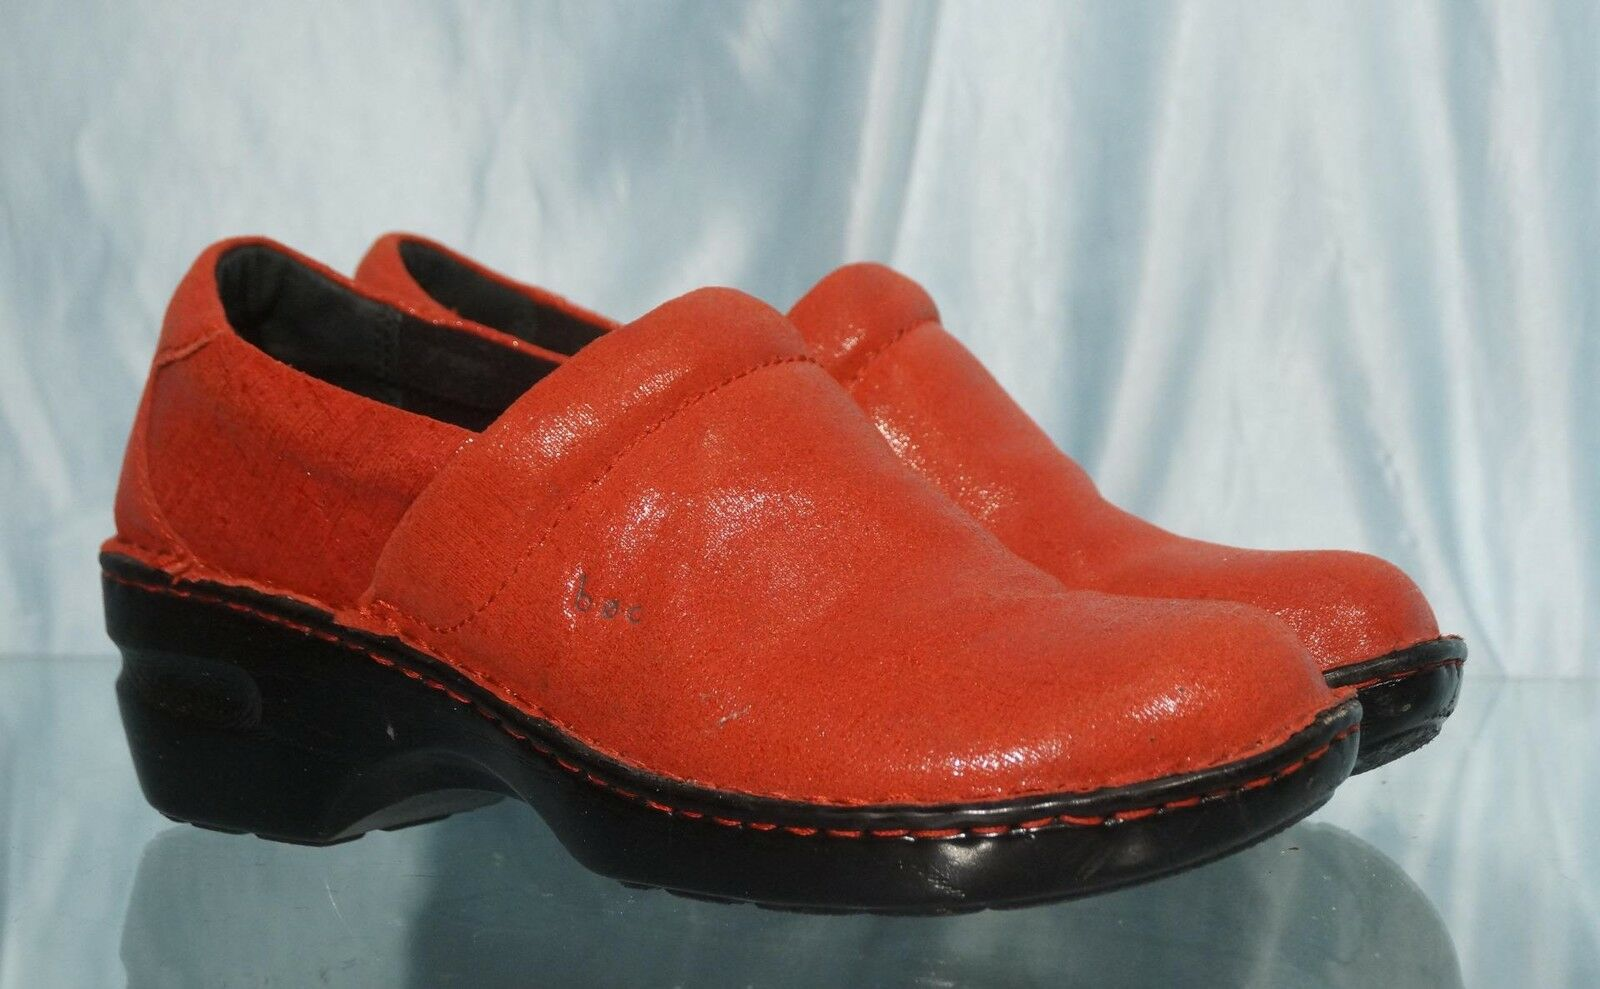 Attractive BORN CONCEPT (B.O.C.) Red Leather Clogs US 10M EUR 42